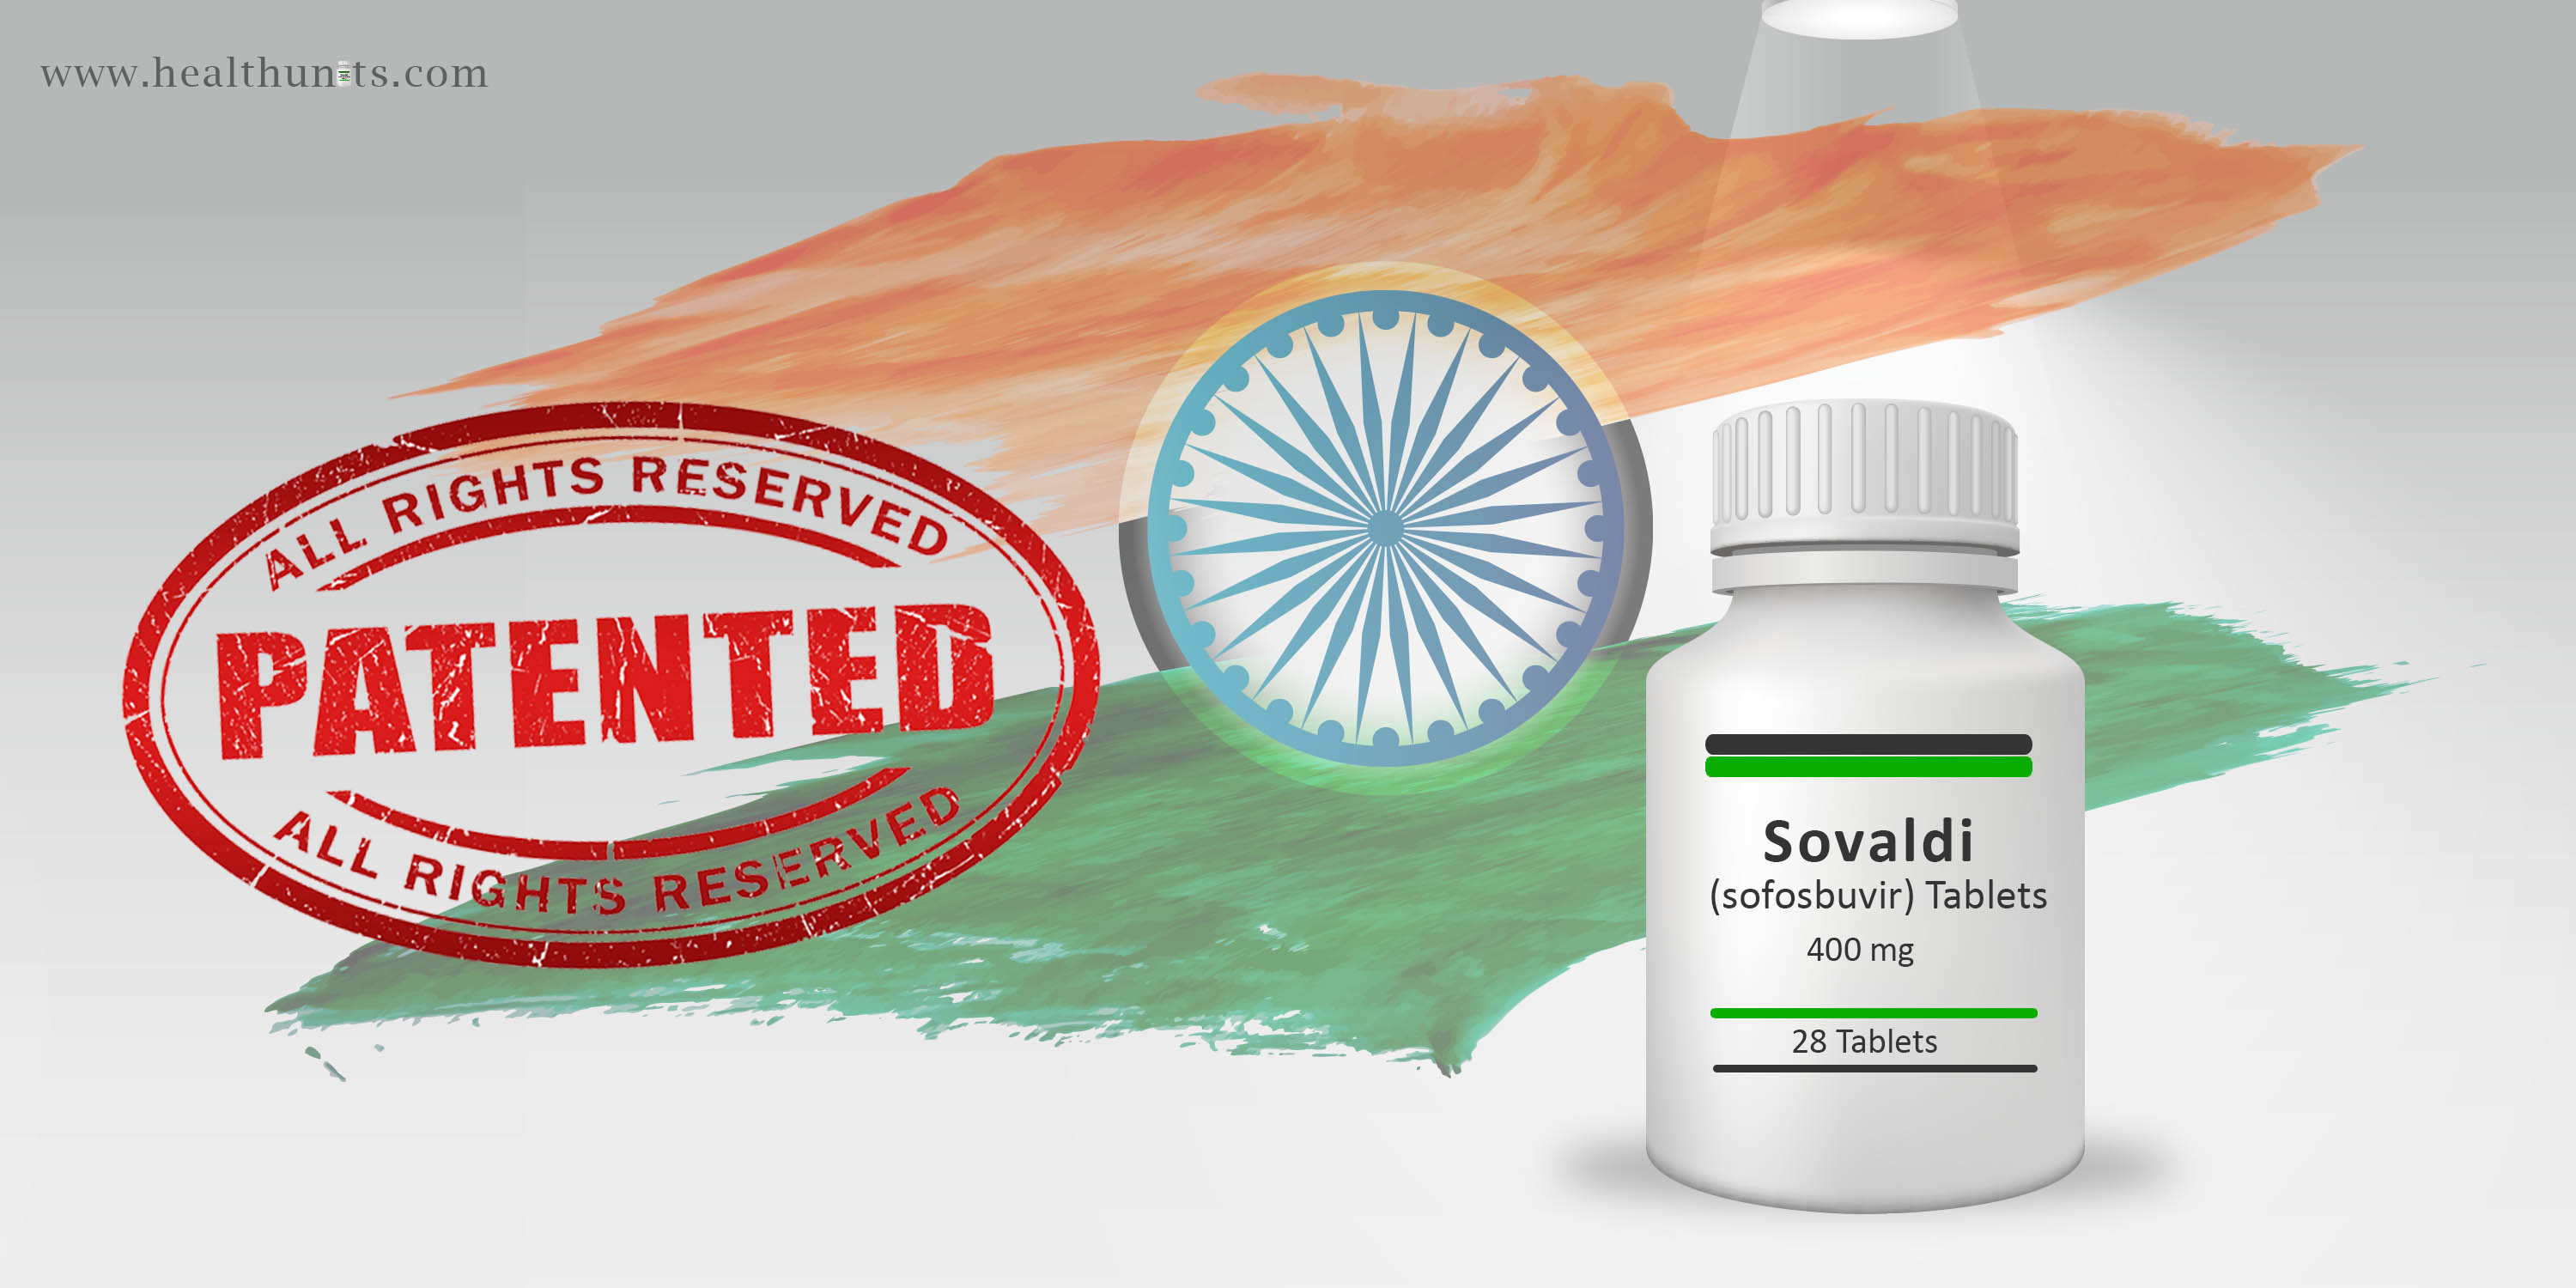 pharmaceutical patenting in india problem of public The need to find a balance between the rights of pharma patent holders and public health has triggered some highly passionate debates in the last three decades india provides a good case study.